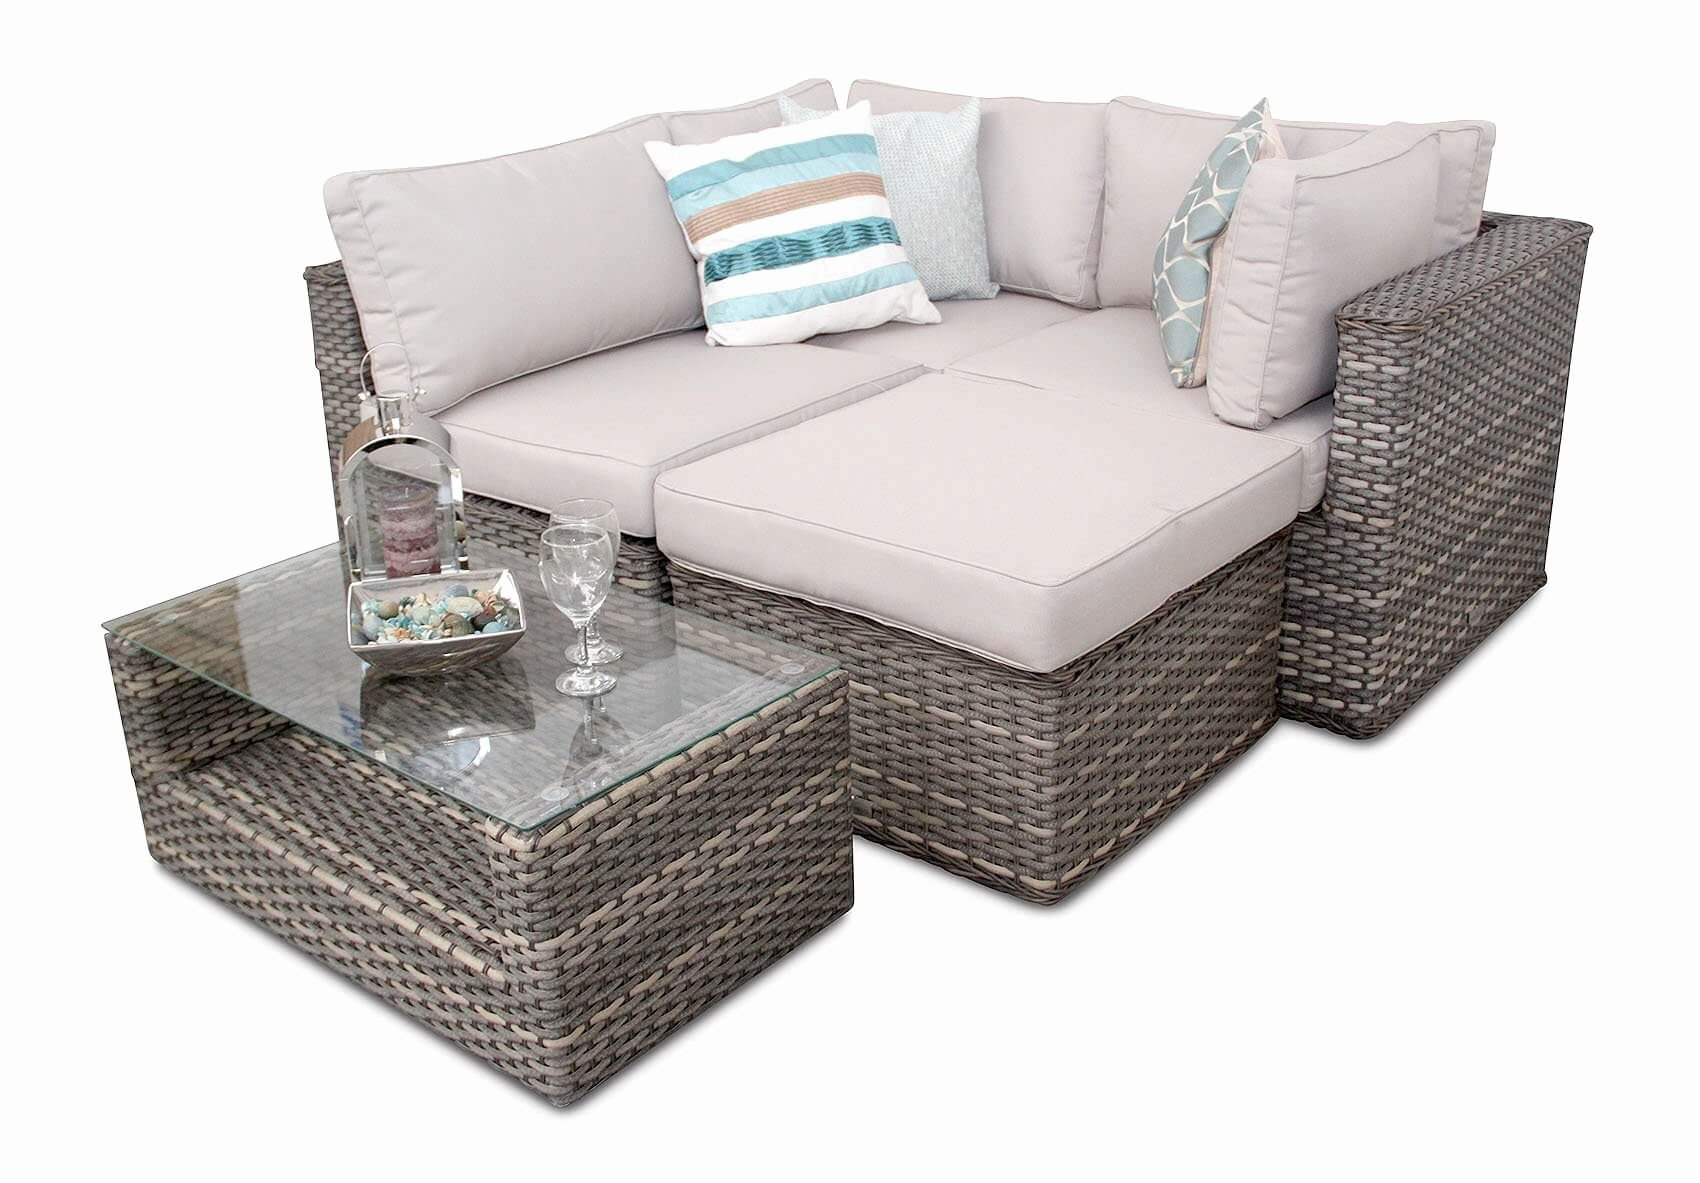 Lovely Small Outdoor Corner sofa Image small rattan outdoor corner